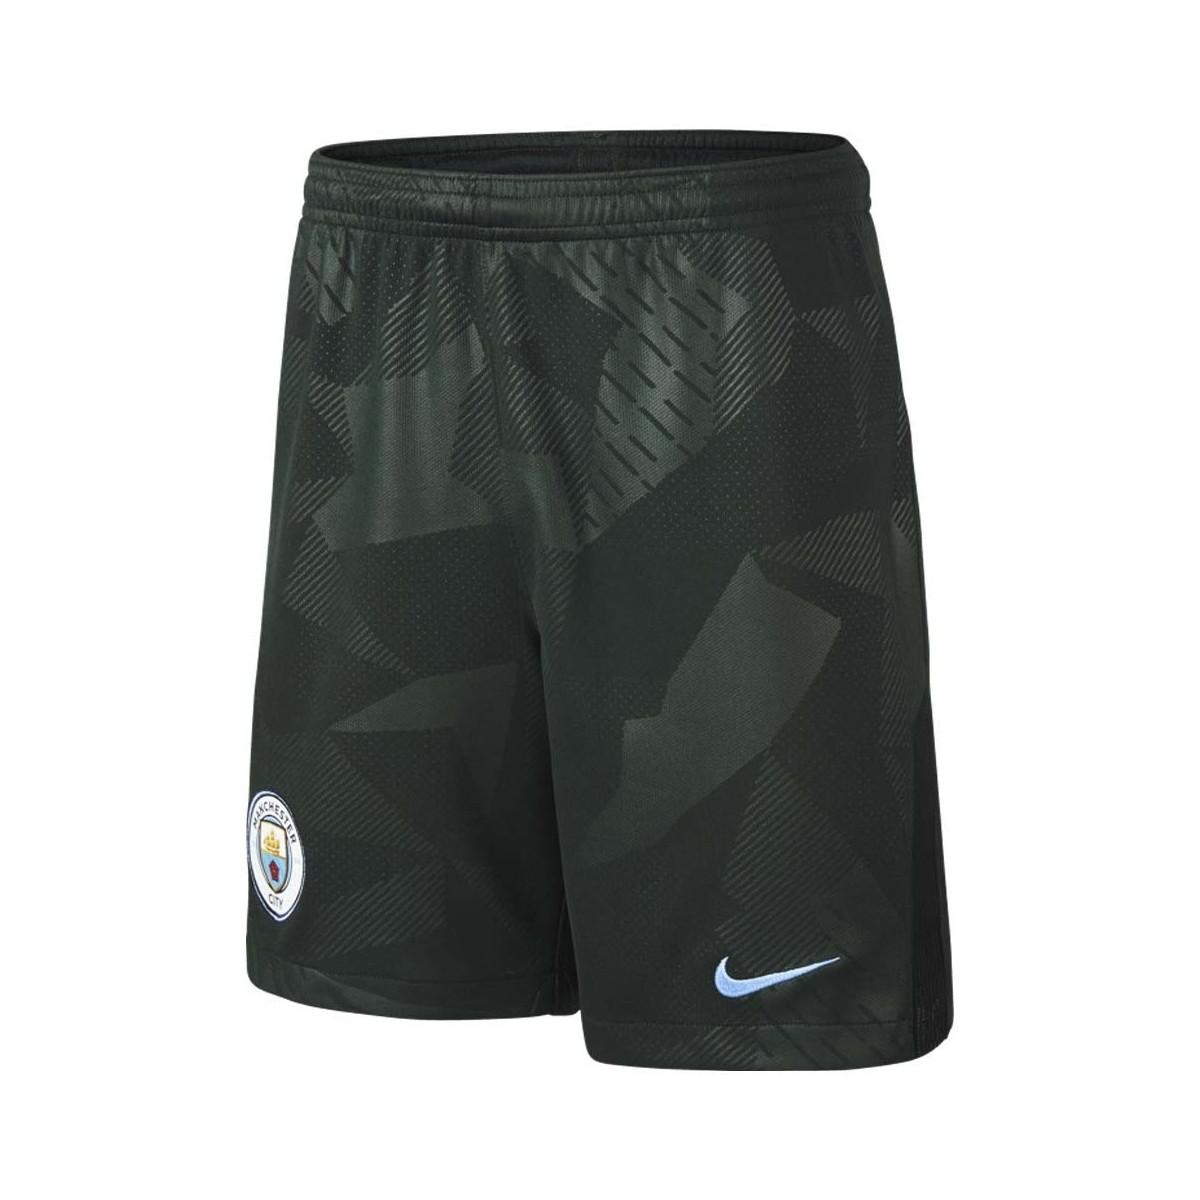 Nike - 2017-2018 Man City Third Football Shorts (kids) Men s Shorts In.  View fullscreen bb391400c